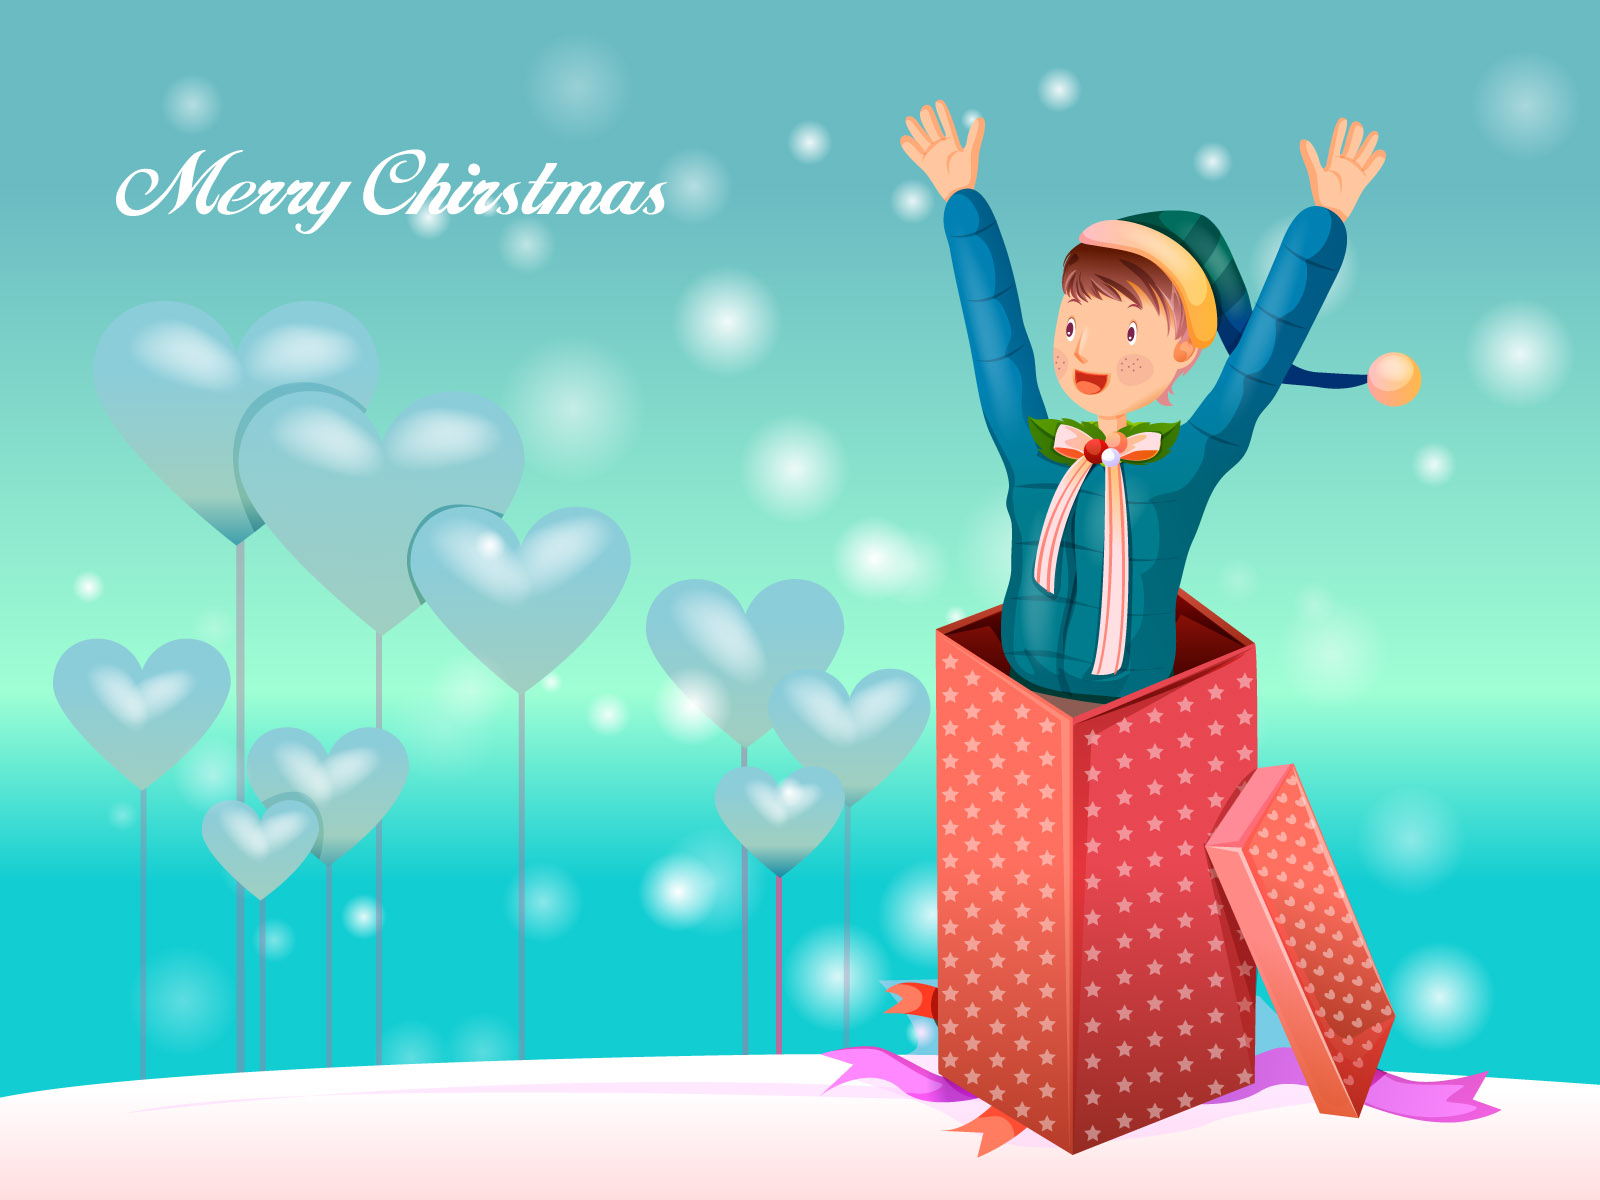 Christmas illustration wallpaper winter articles 16090